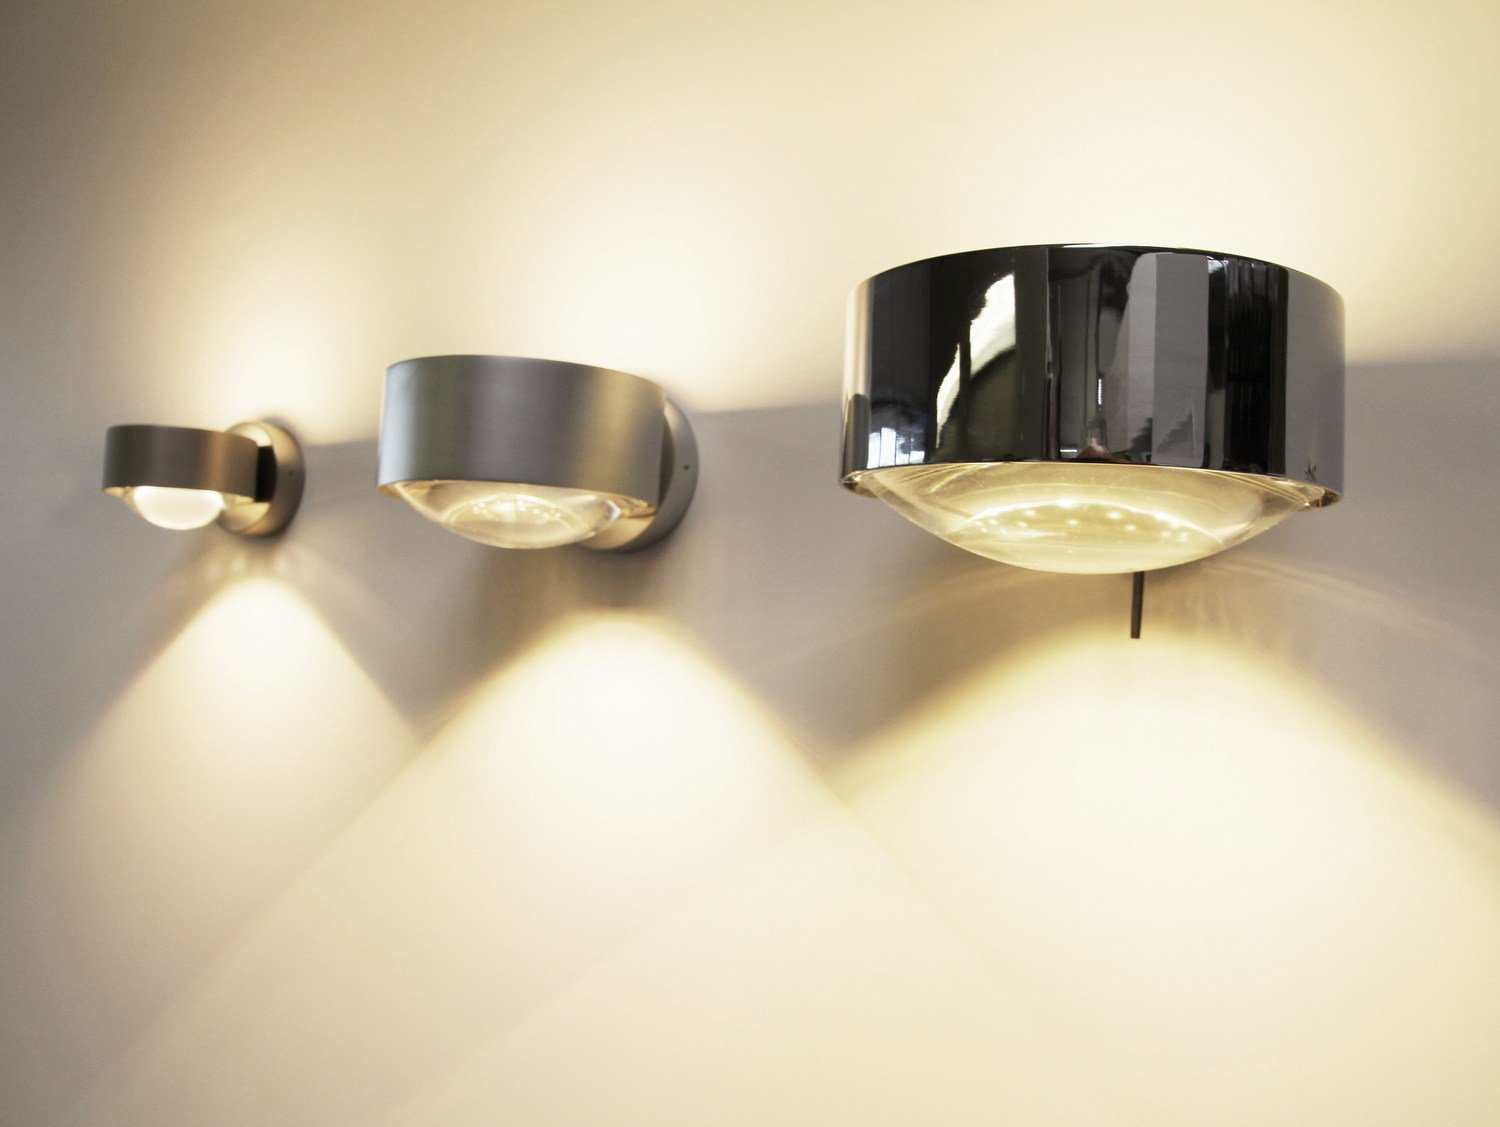 adjustable metal wall light puk wall by top light design rolf ziel. Black Bedroom Furniture Sets. Home Design Ideas